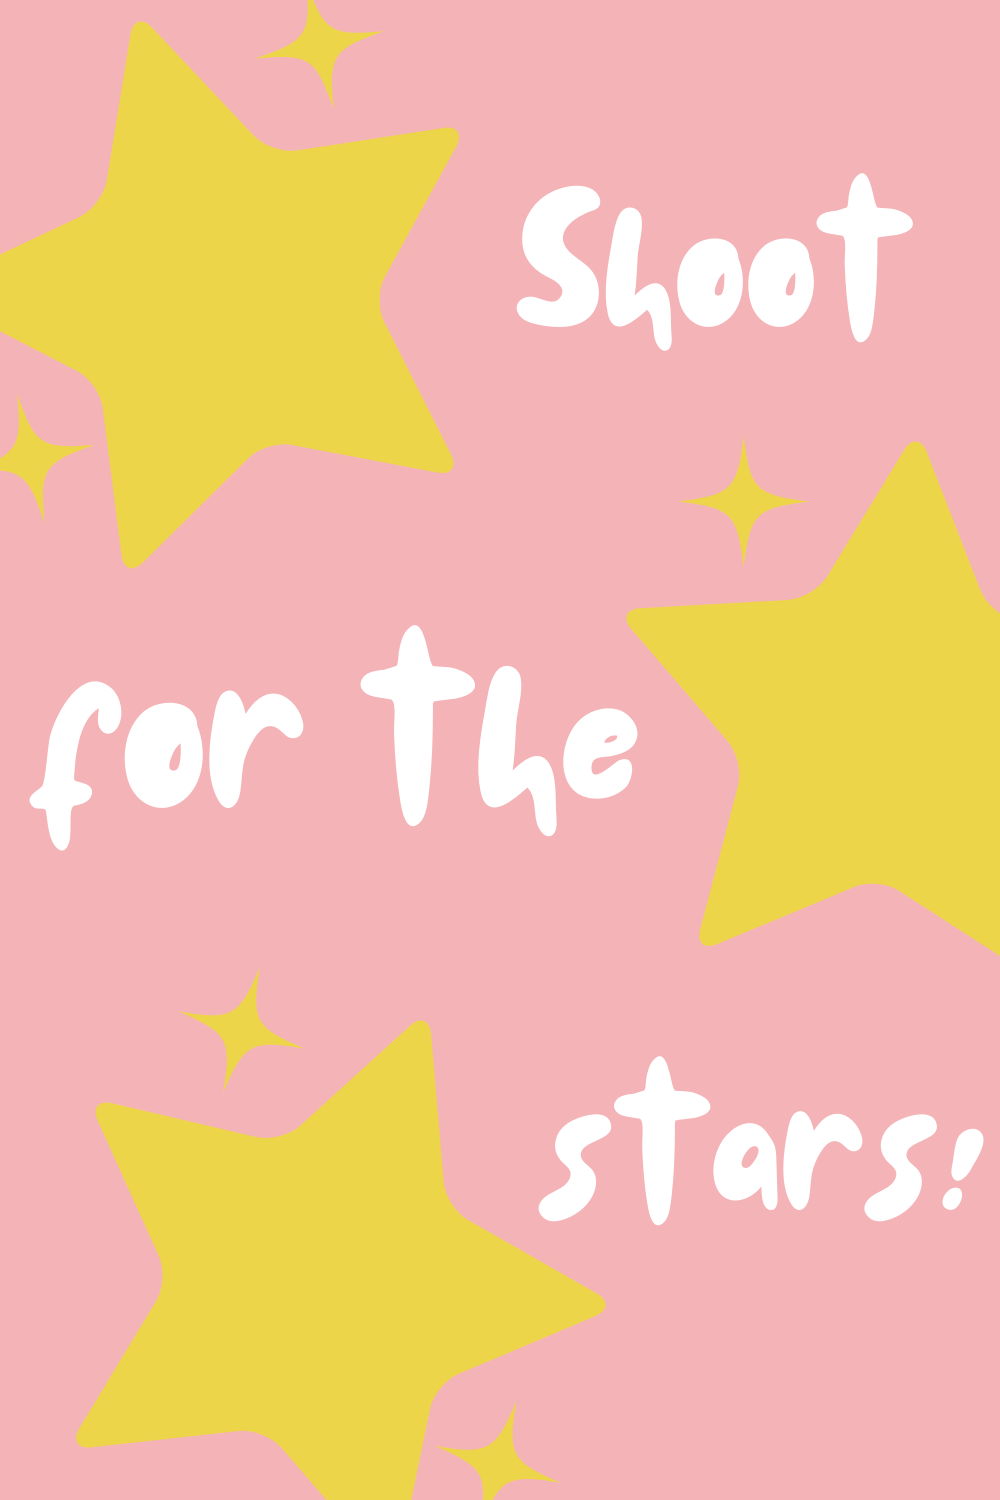 Shoot for the stars quotes